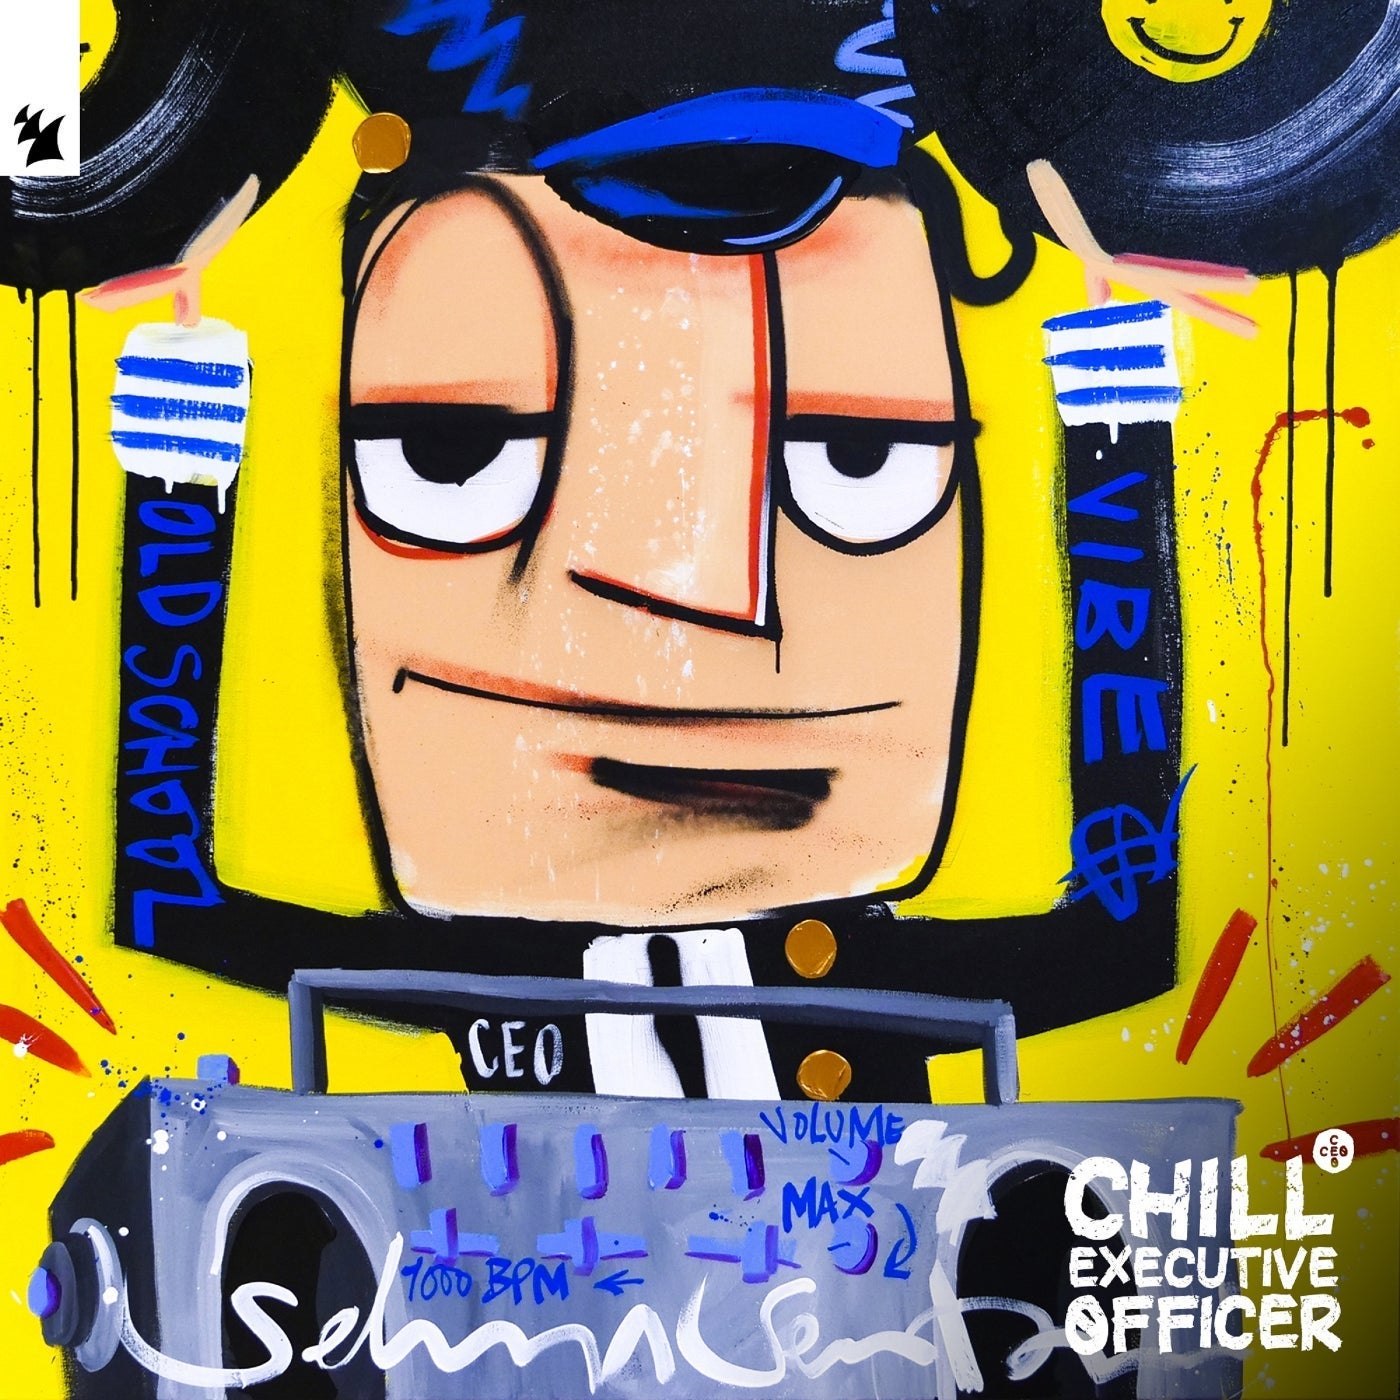 Chill Executive Officer, Vol. 2 (Selected by Maykel Piron) - Extended Versions